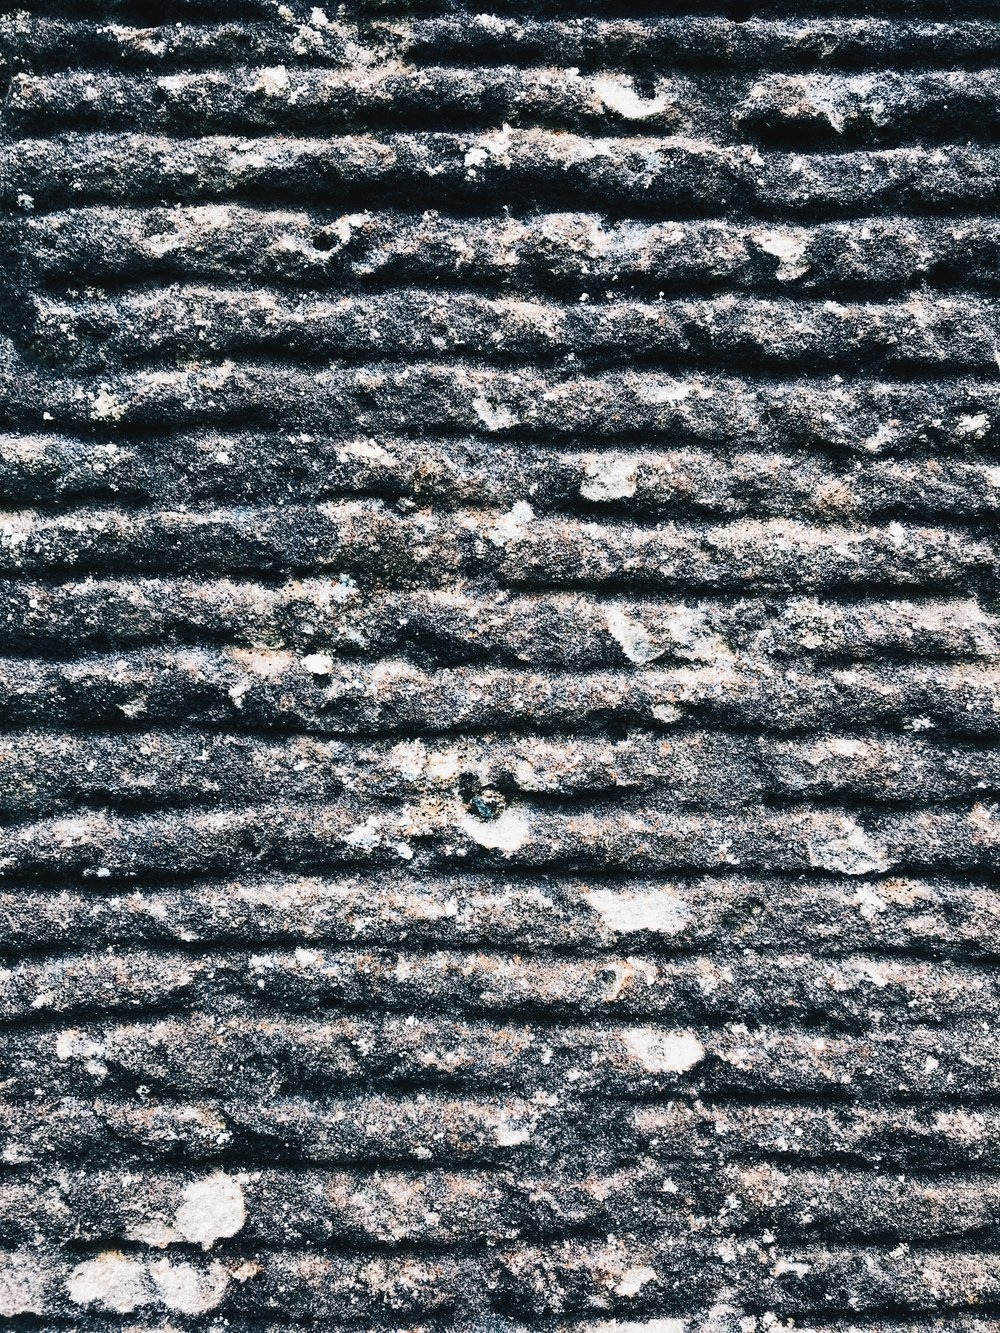 Stone textures on the Castle walls